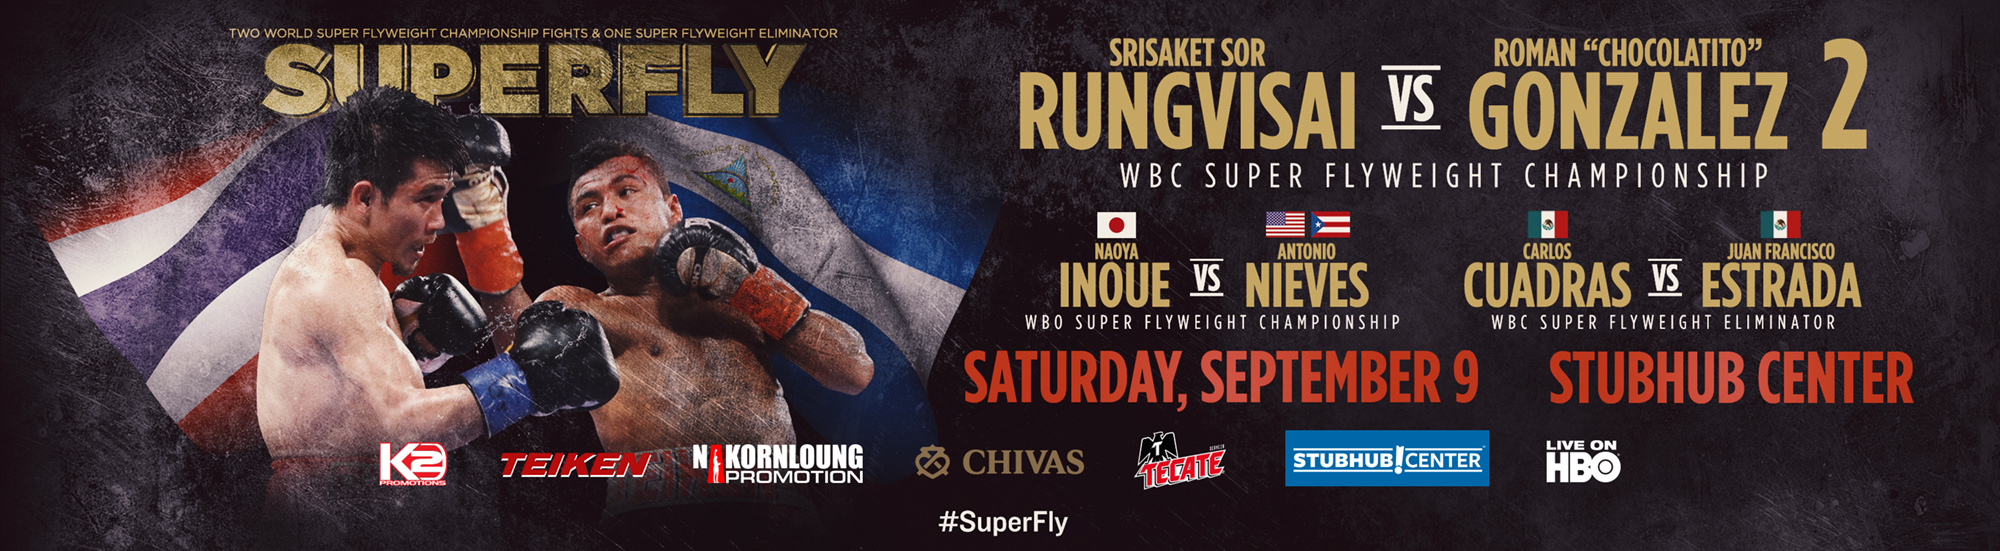 superfly-